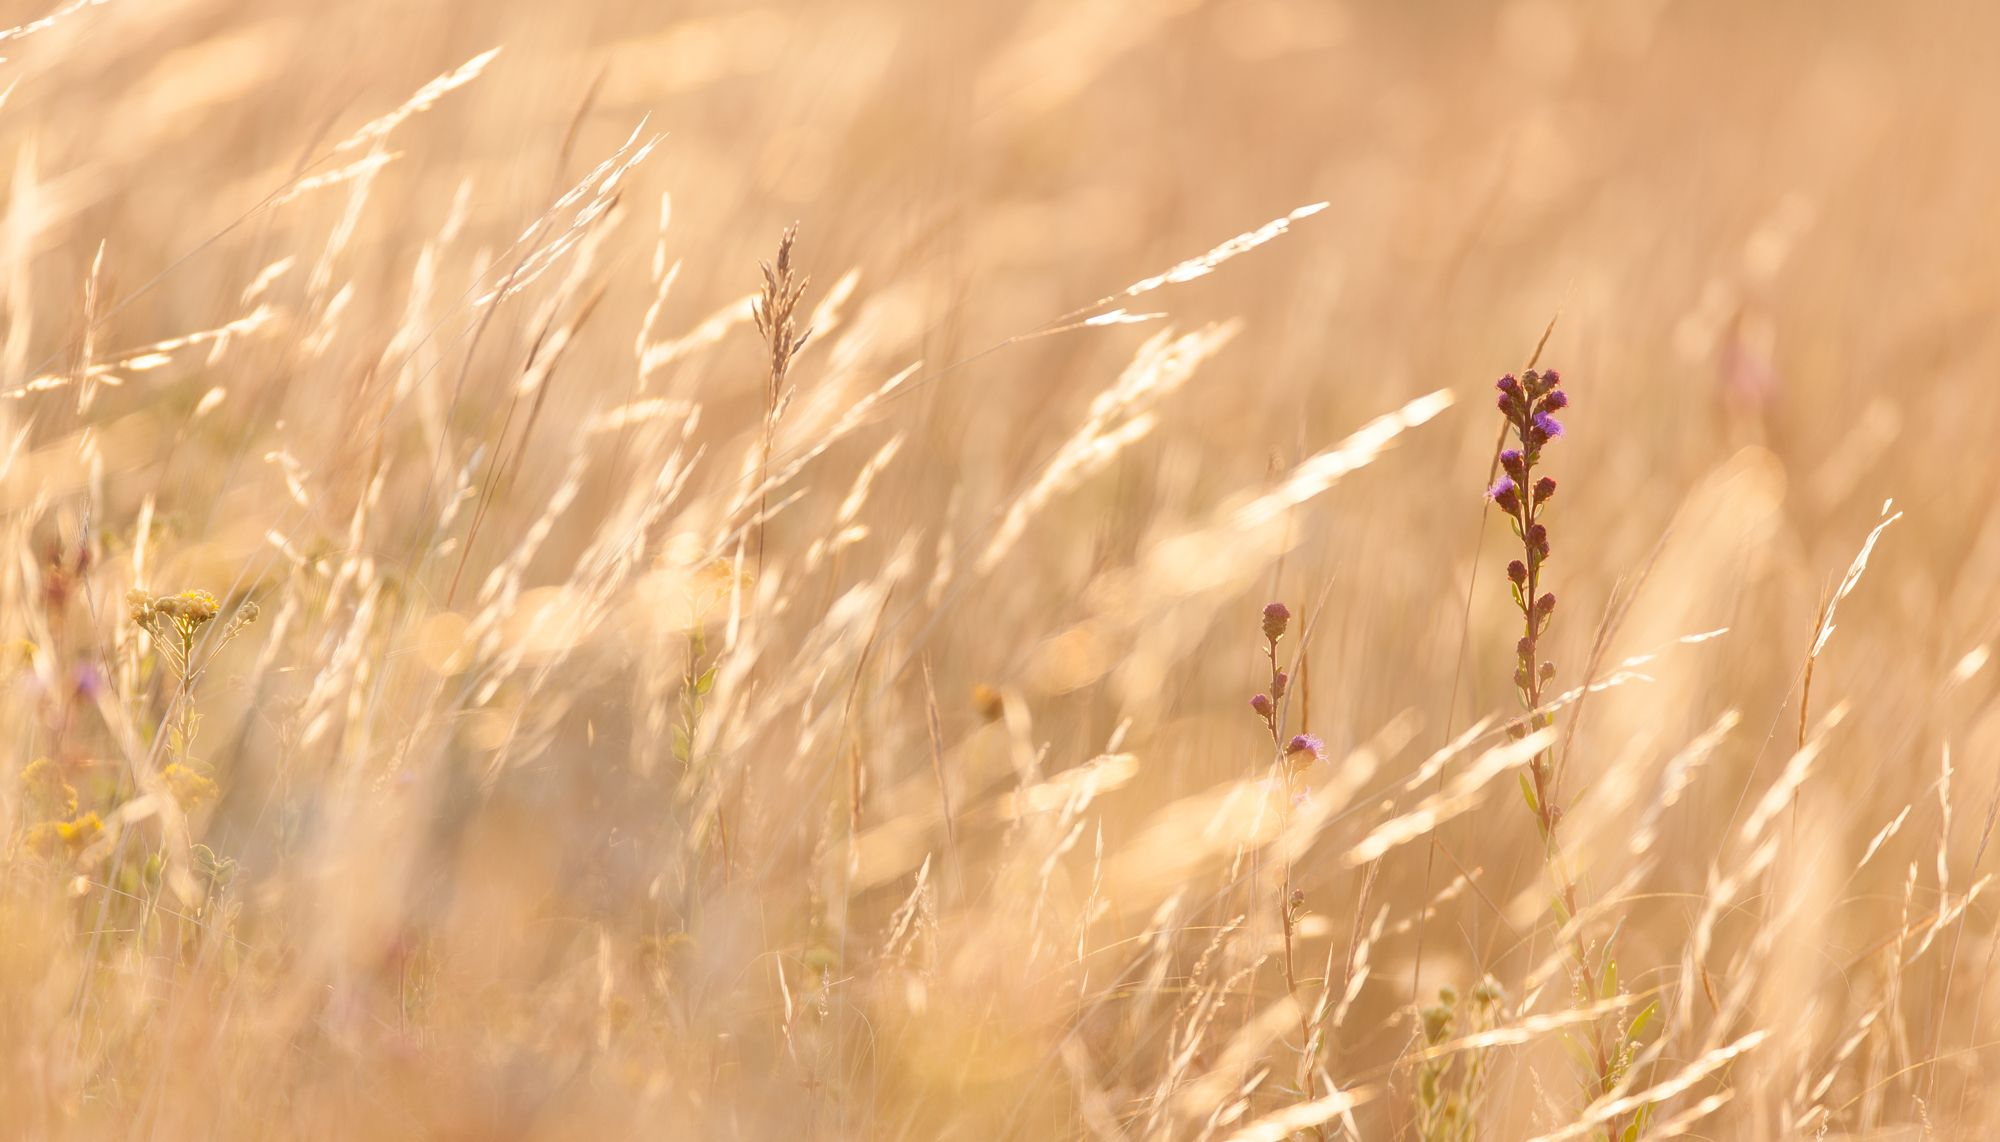 prairie grasses and flowers.